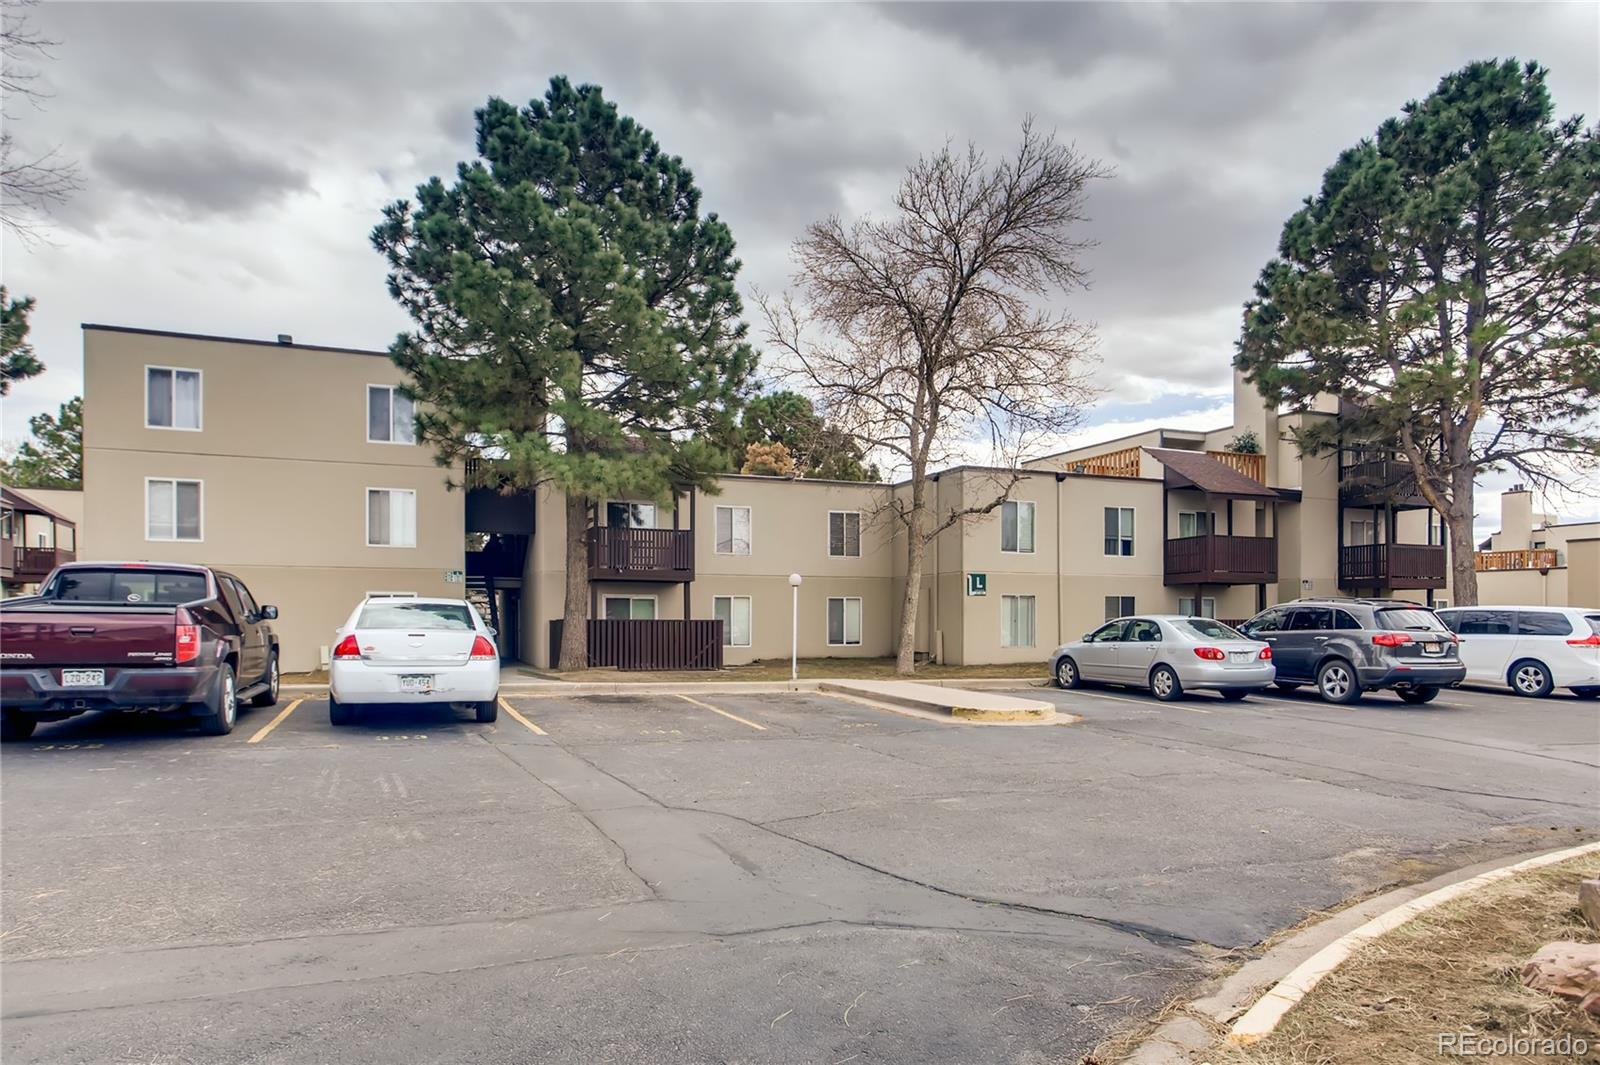 Ranch-style low-maintenance condo offers a chance to break free from increasing rents and become a homeowner! It's no frills, but sweat equity can create your Home Sweet Home. Good size family room has authentic wood-burning fireplace. Galley kitchen features tile floor and includes fridge, oven with cooktop, microwave and dishwasher and ample counter space, cabinets & pantry. Master bedroom has a triple-width closet & private bath. Second bedroom is serviced by full 2nd bath that was recently remodeled. Family room includes access to covered patio with privacy fencing by shady tree, providing a quiet place to sit outside as spring approaches. In-unit laundry puts an end to schlepping to the Laundromat. This main-floor unit has no stairs and is handicap accessible. 1 parking spot in lot. Community pool. Walking distance to bus and High Line Canal Trail. Easy walk to any number of businesses, for coffee and a donut, or a job. Minutes to parks and delicious eateries from around the world. Minutes to highways. A great choice for a single buyer, couple, small family or roommates!